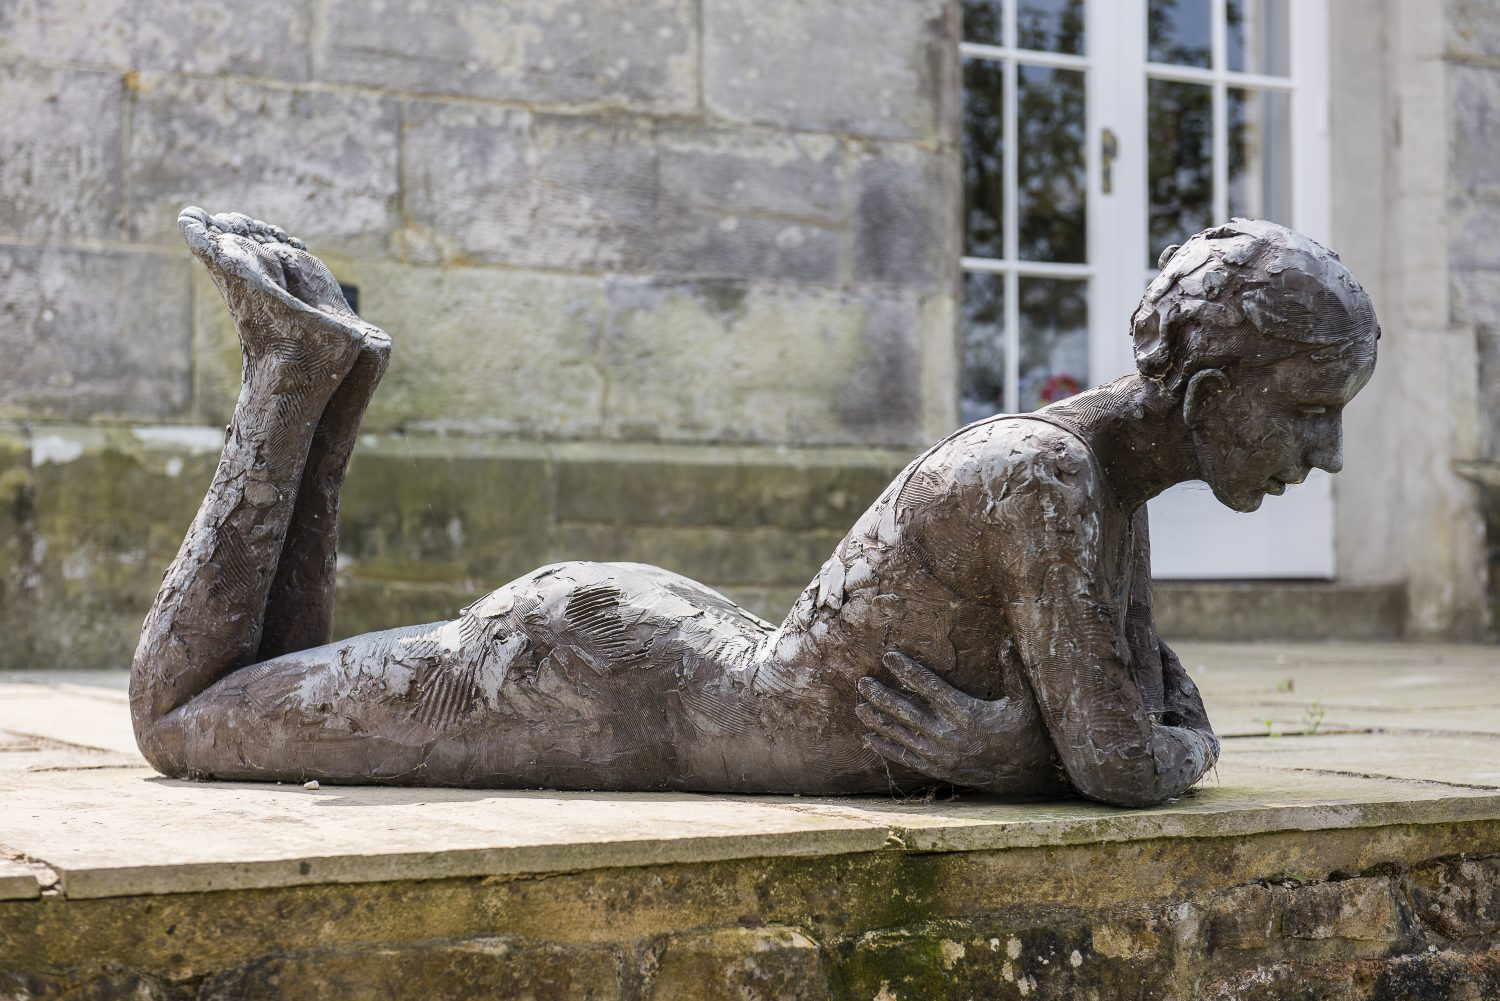 Sculptures by Carol Peace and Dawn Benson add interest on the terrace and among the borders